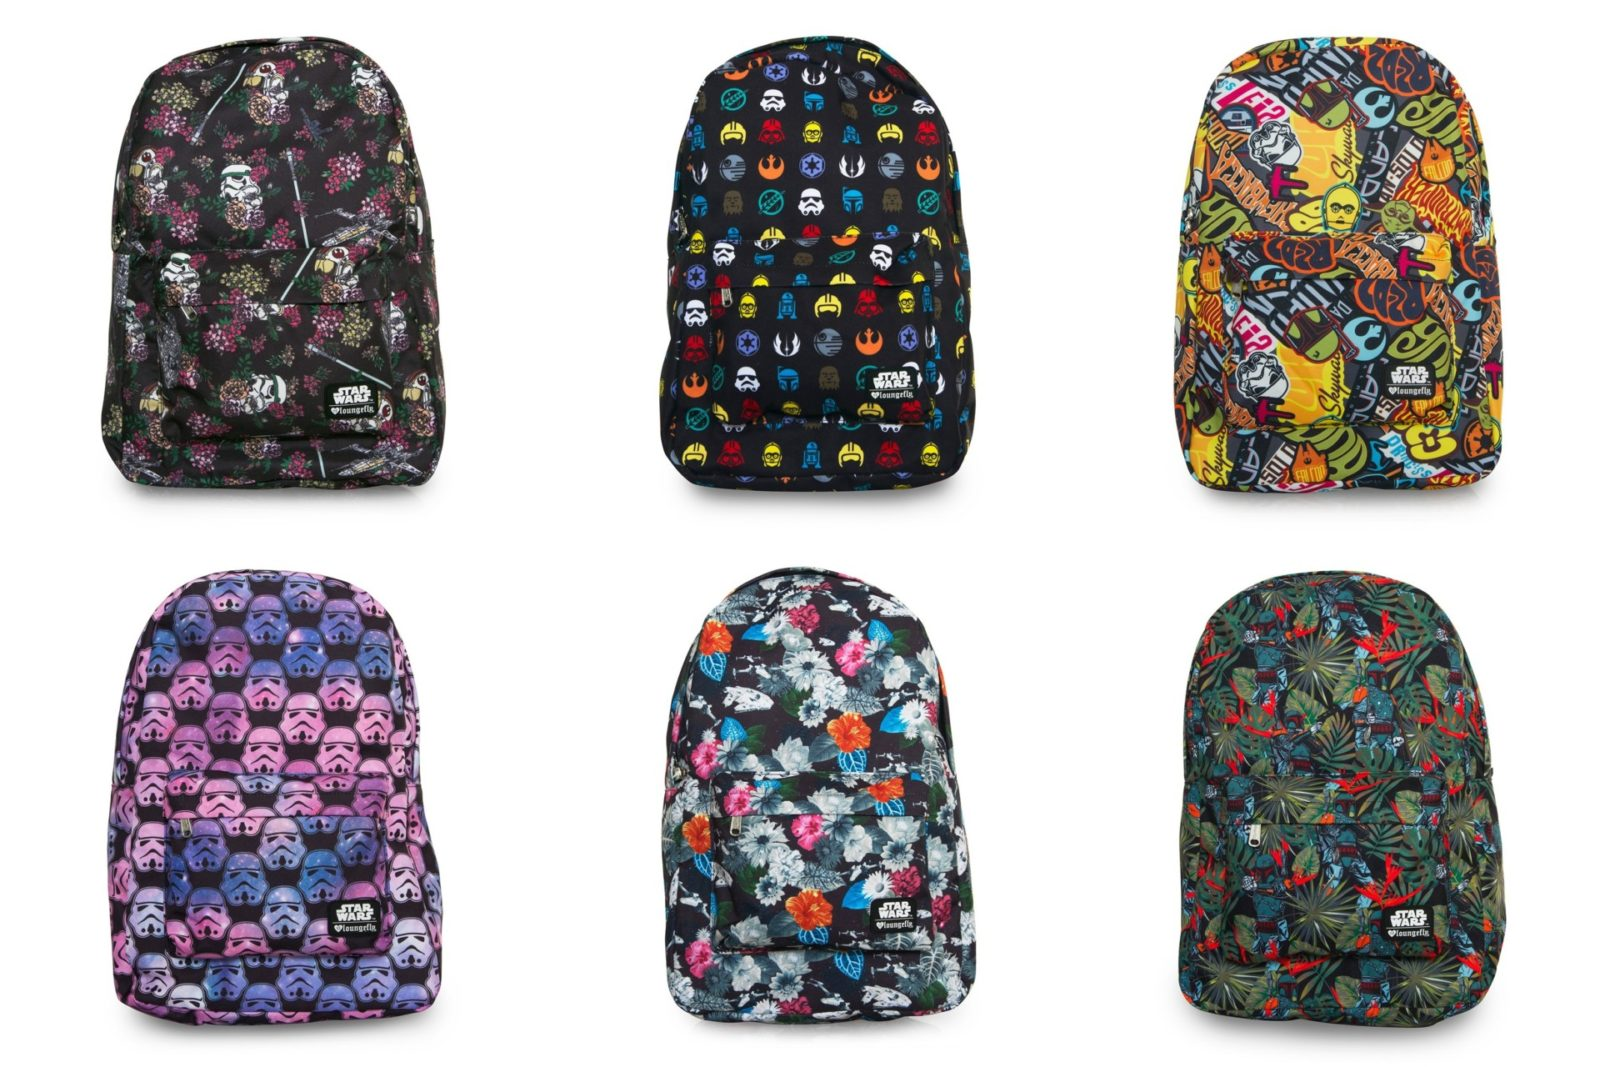 New Loungefly Star Wars backpack range